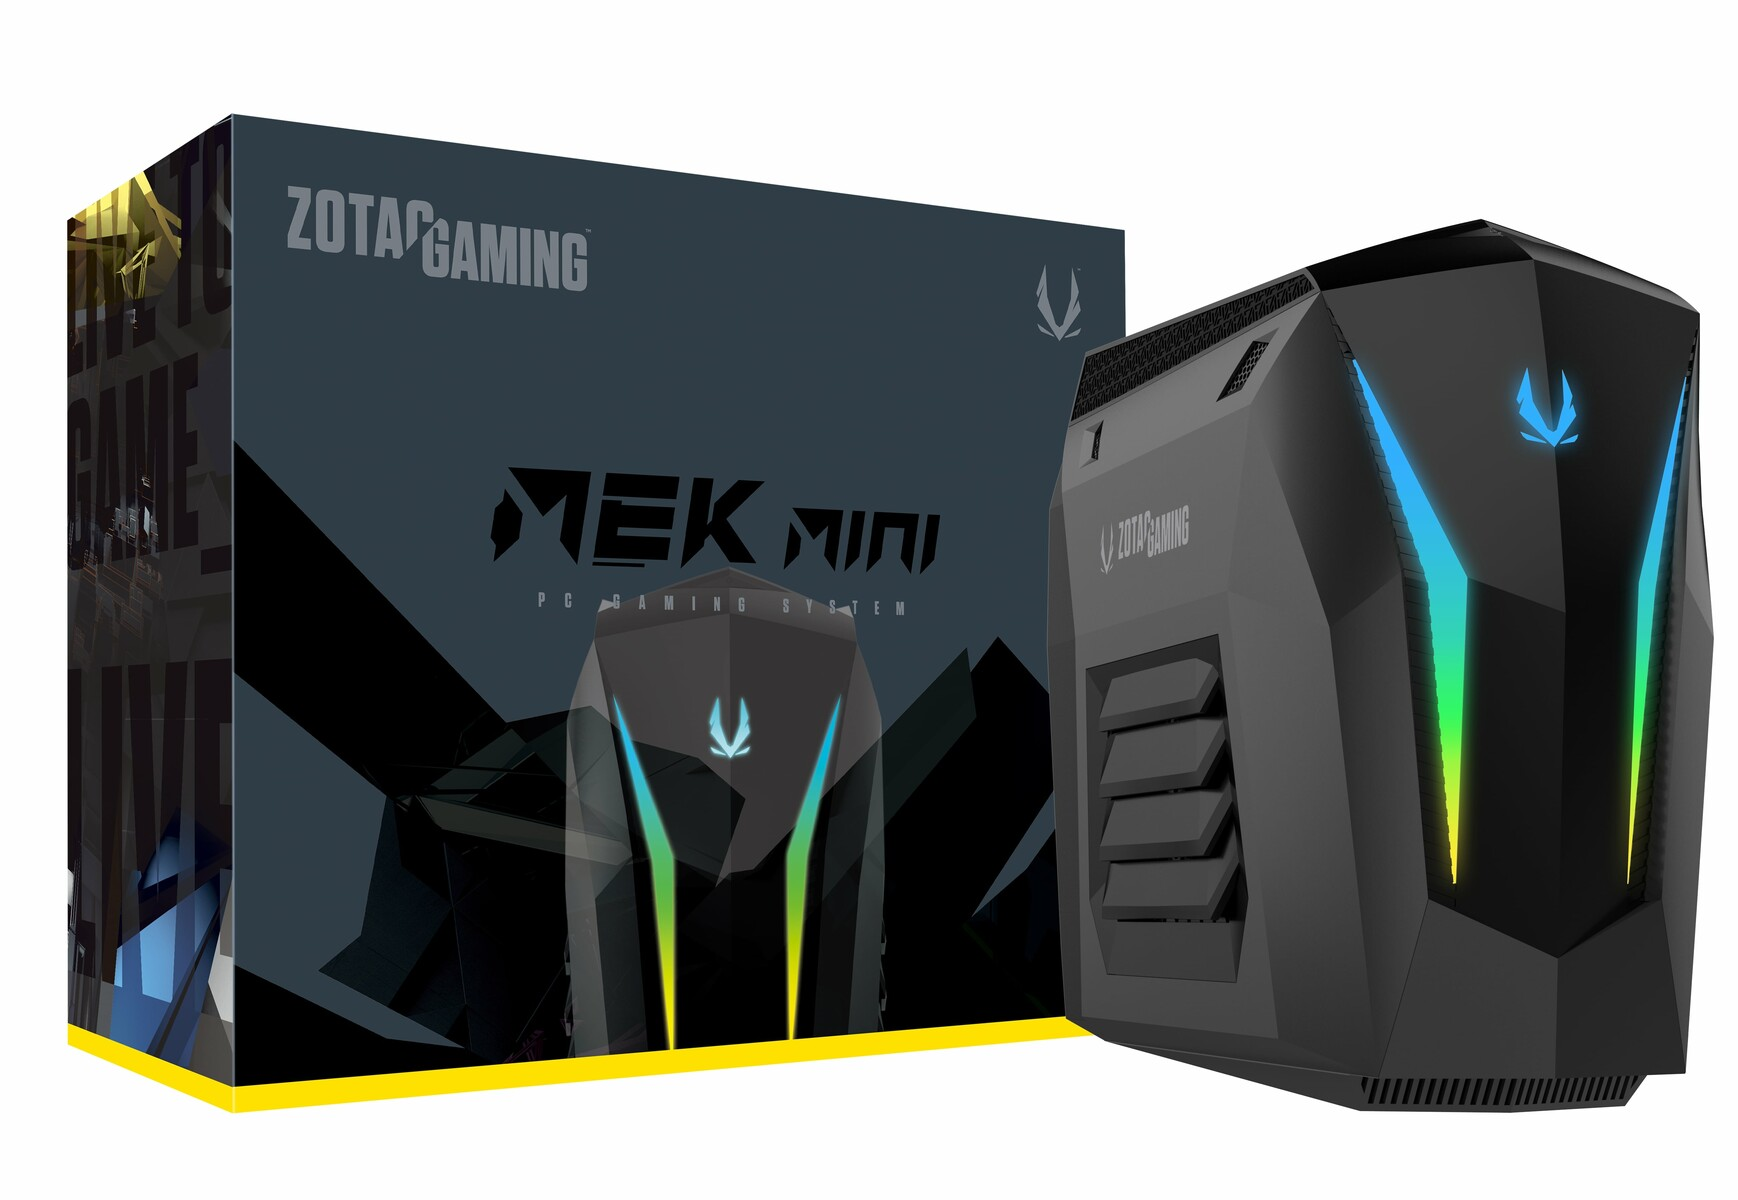 Zotac launches Mek Mini PC with removable GeForce RTX 2070